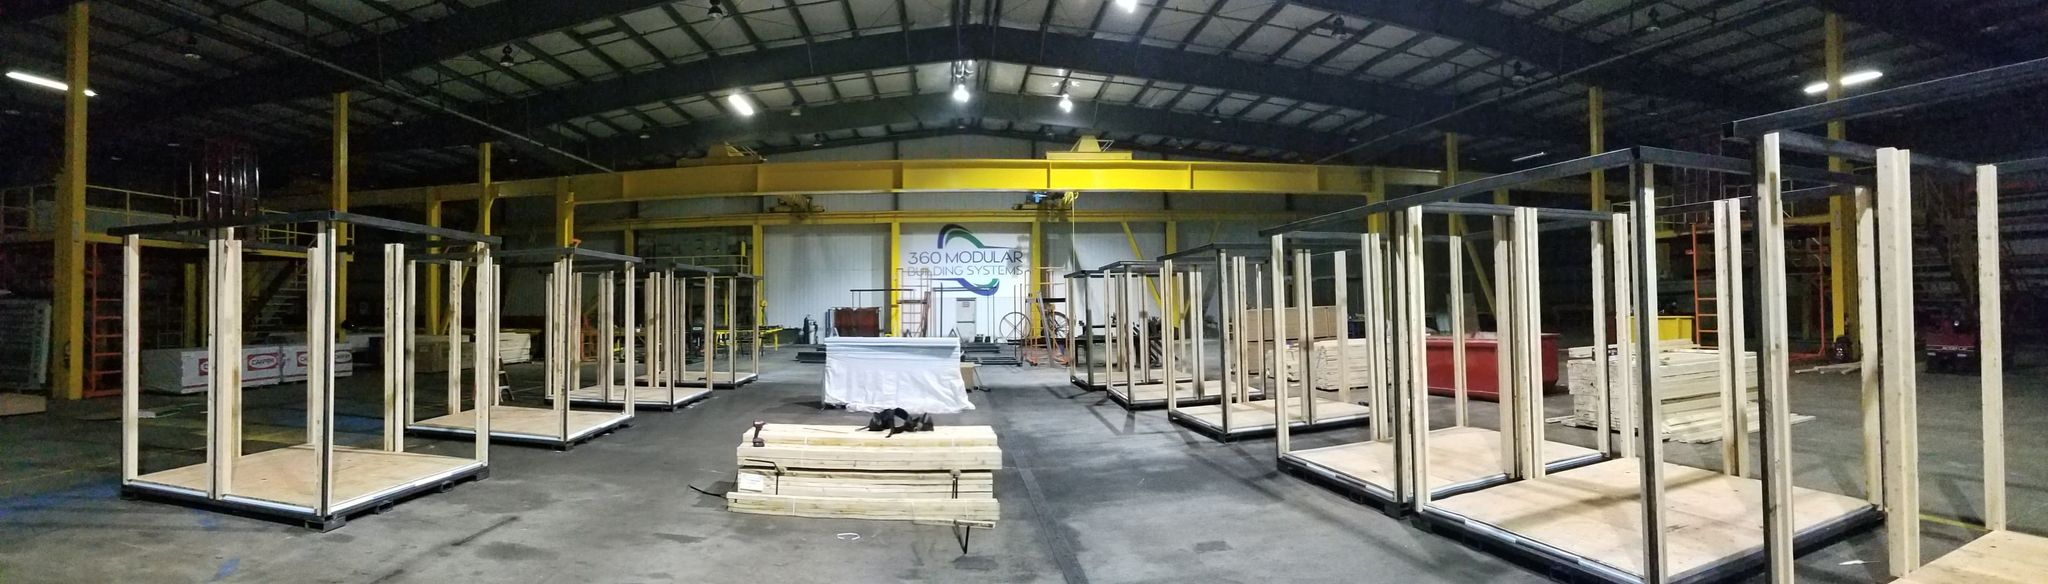 Module units being constructed inside the 360 Modular Building Systems facility (January 2021). Photo courtesy of 360 Modular Building Systems